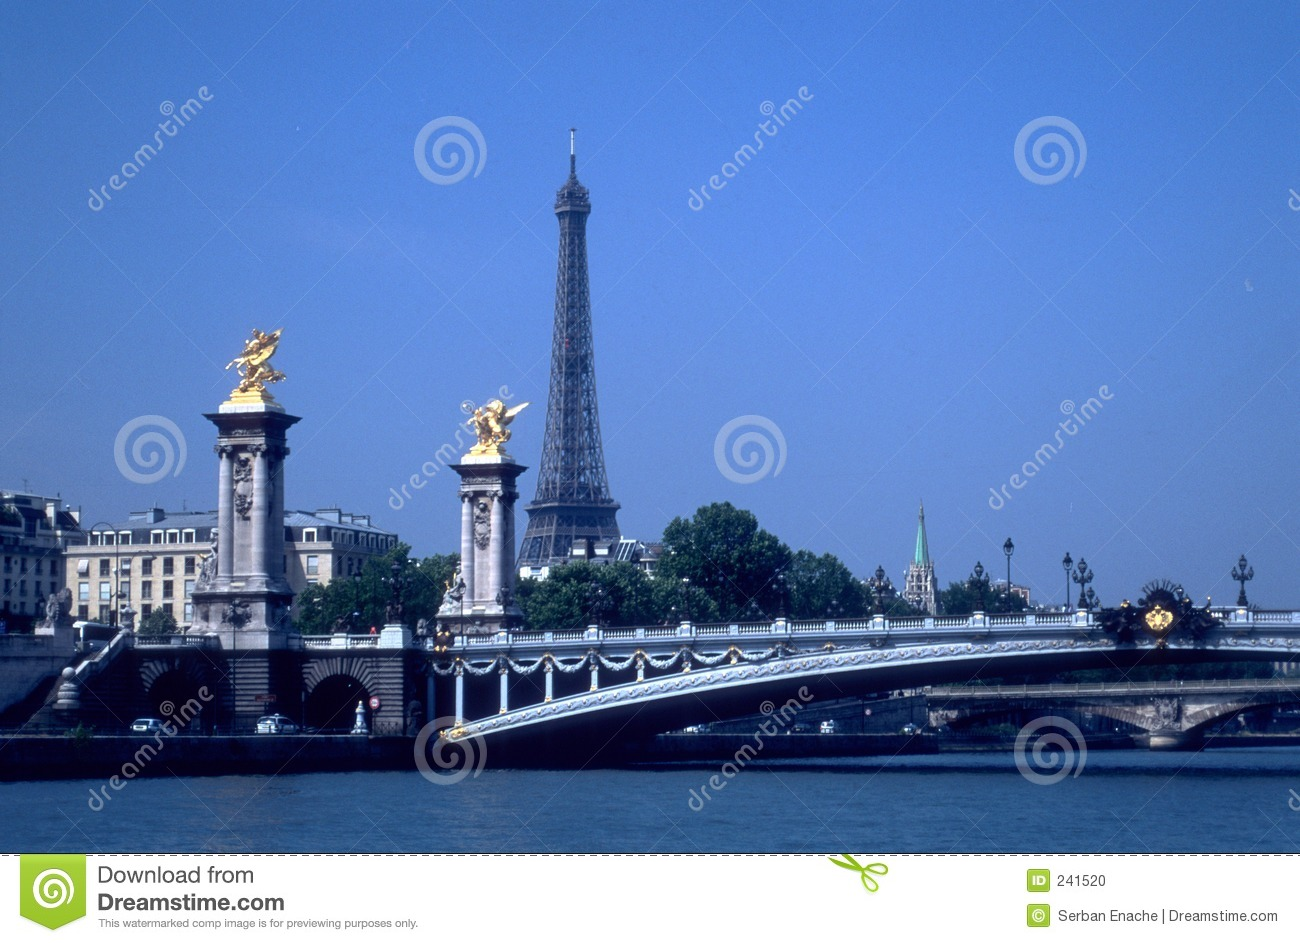 Download Eiffel Tower And Bridges Over Seine Stock Photo - Image of europe, bridge: 241520